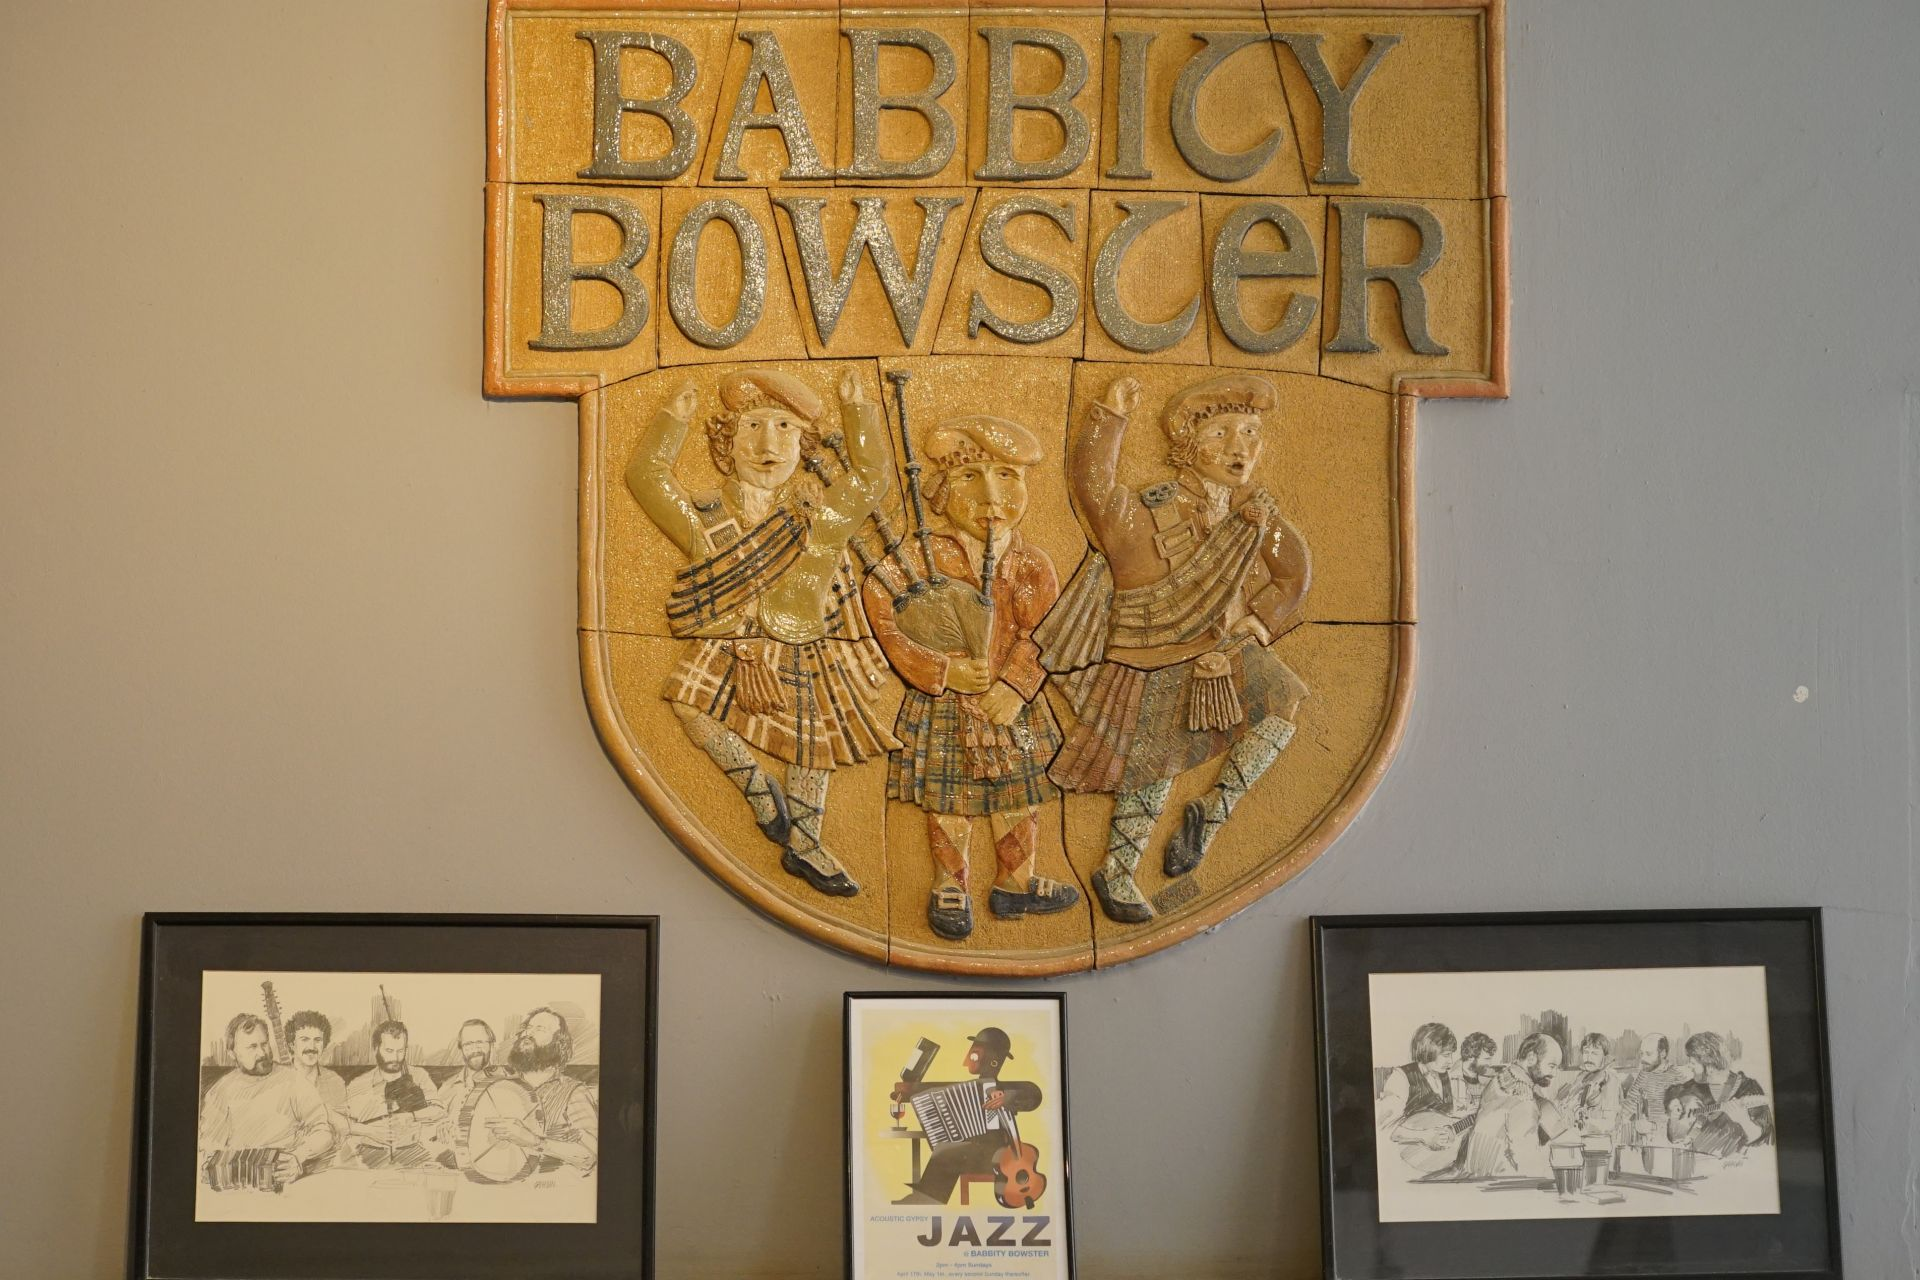 Babbity Bowster plaque